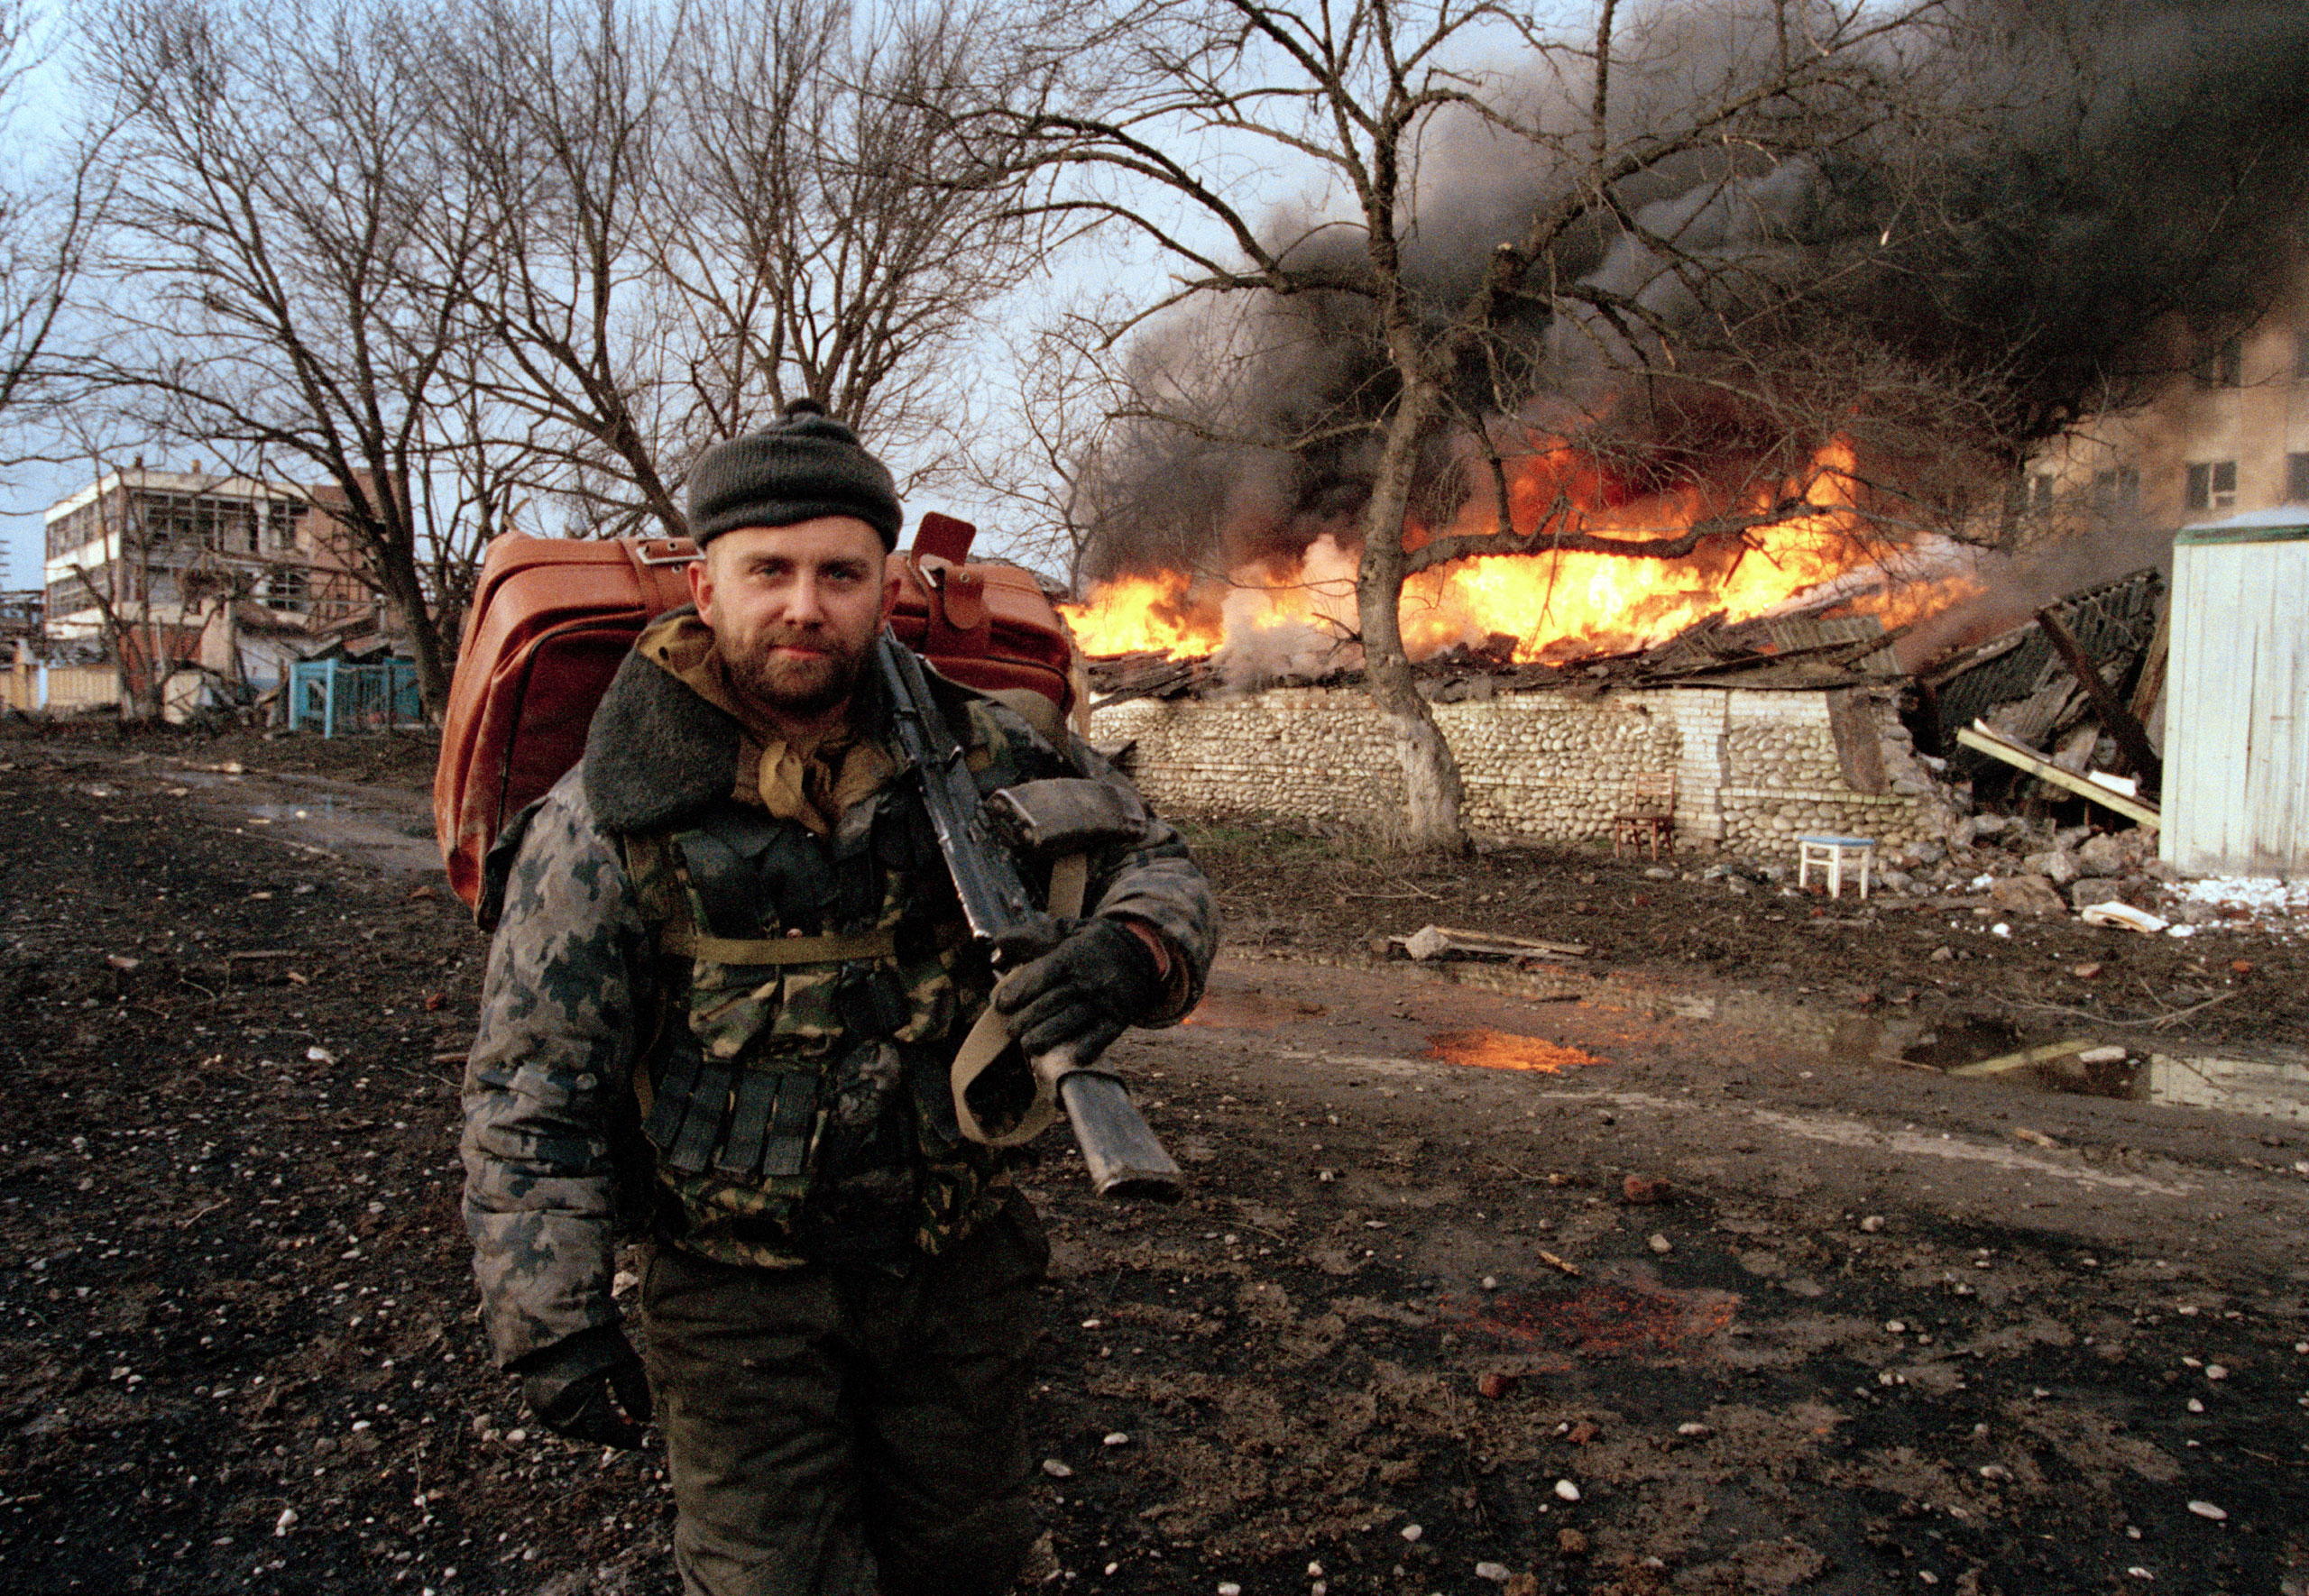 A Russian militia special forces soldier in Grozny, Chechnya, January 2000.